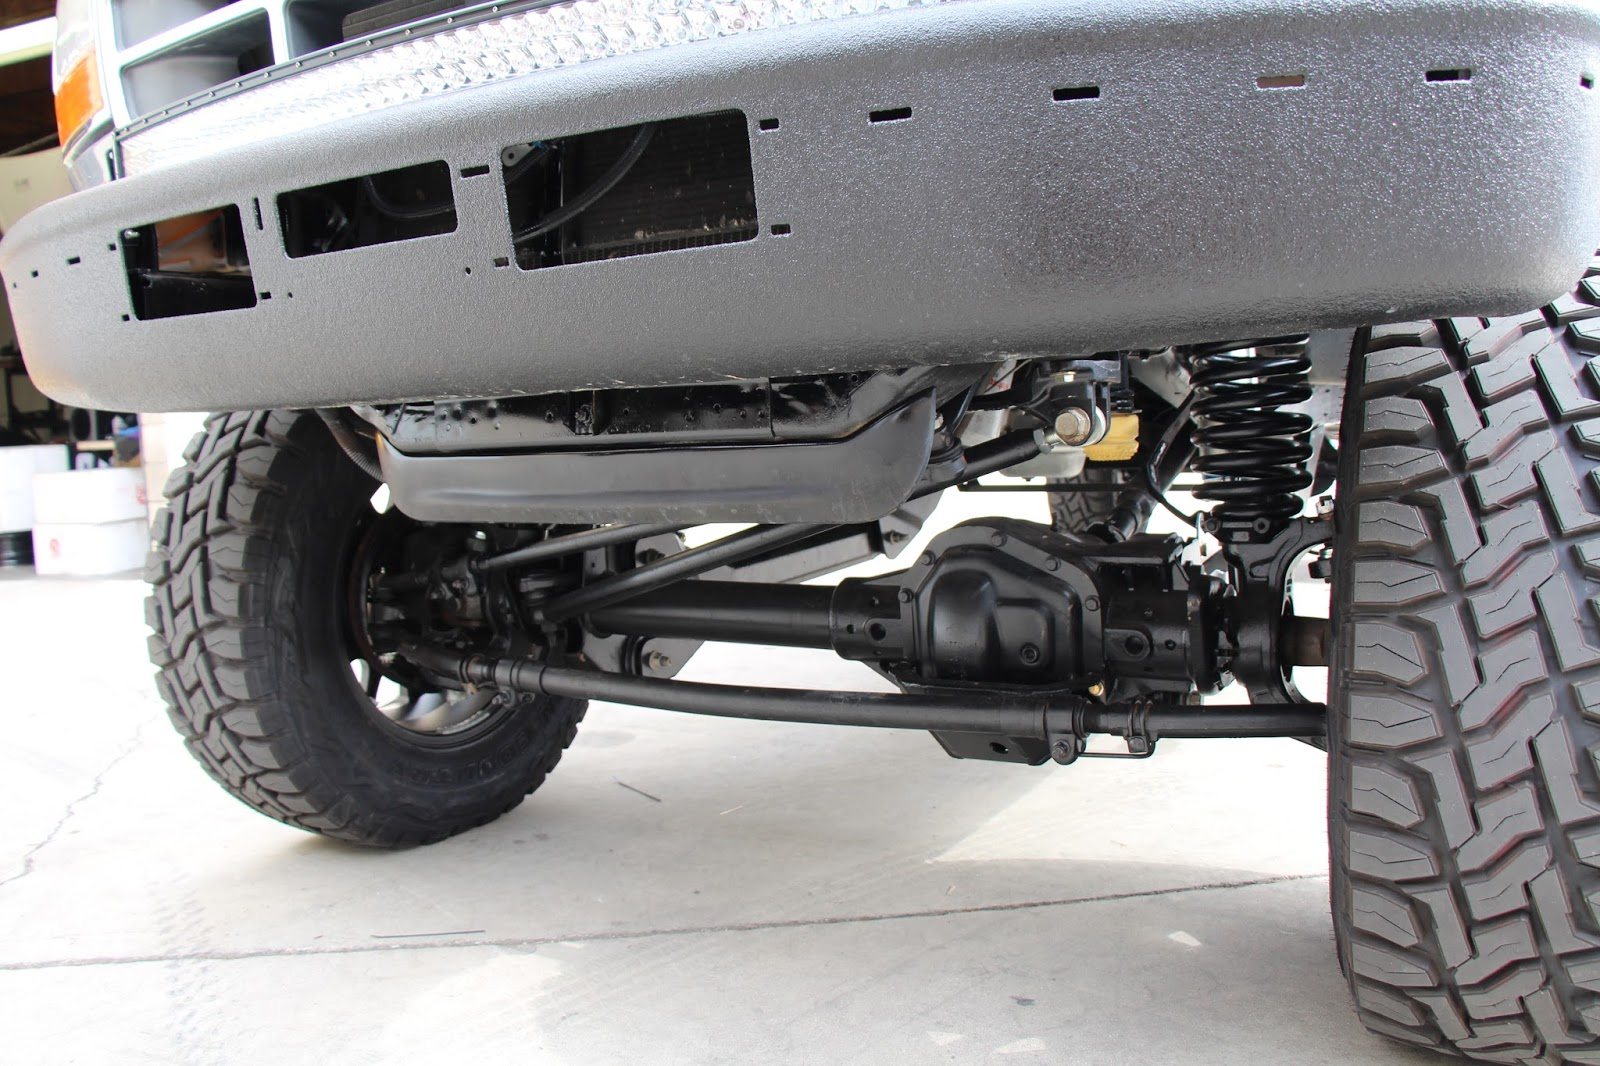 Cjc off road blog update to our 1997 obs f350 carli dominator build